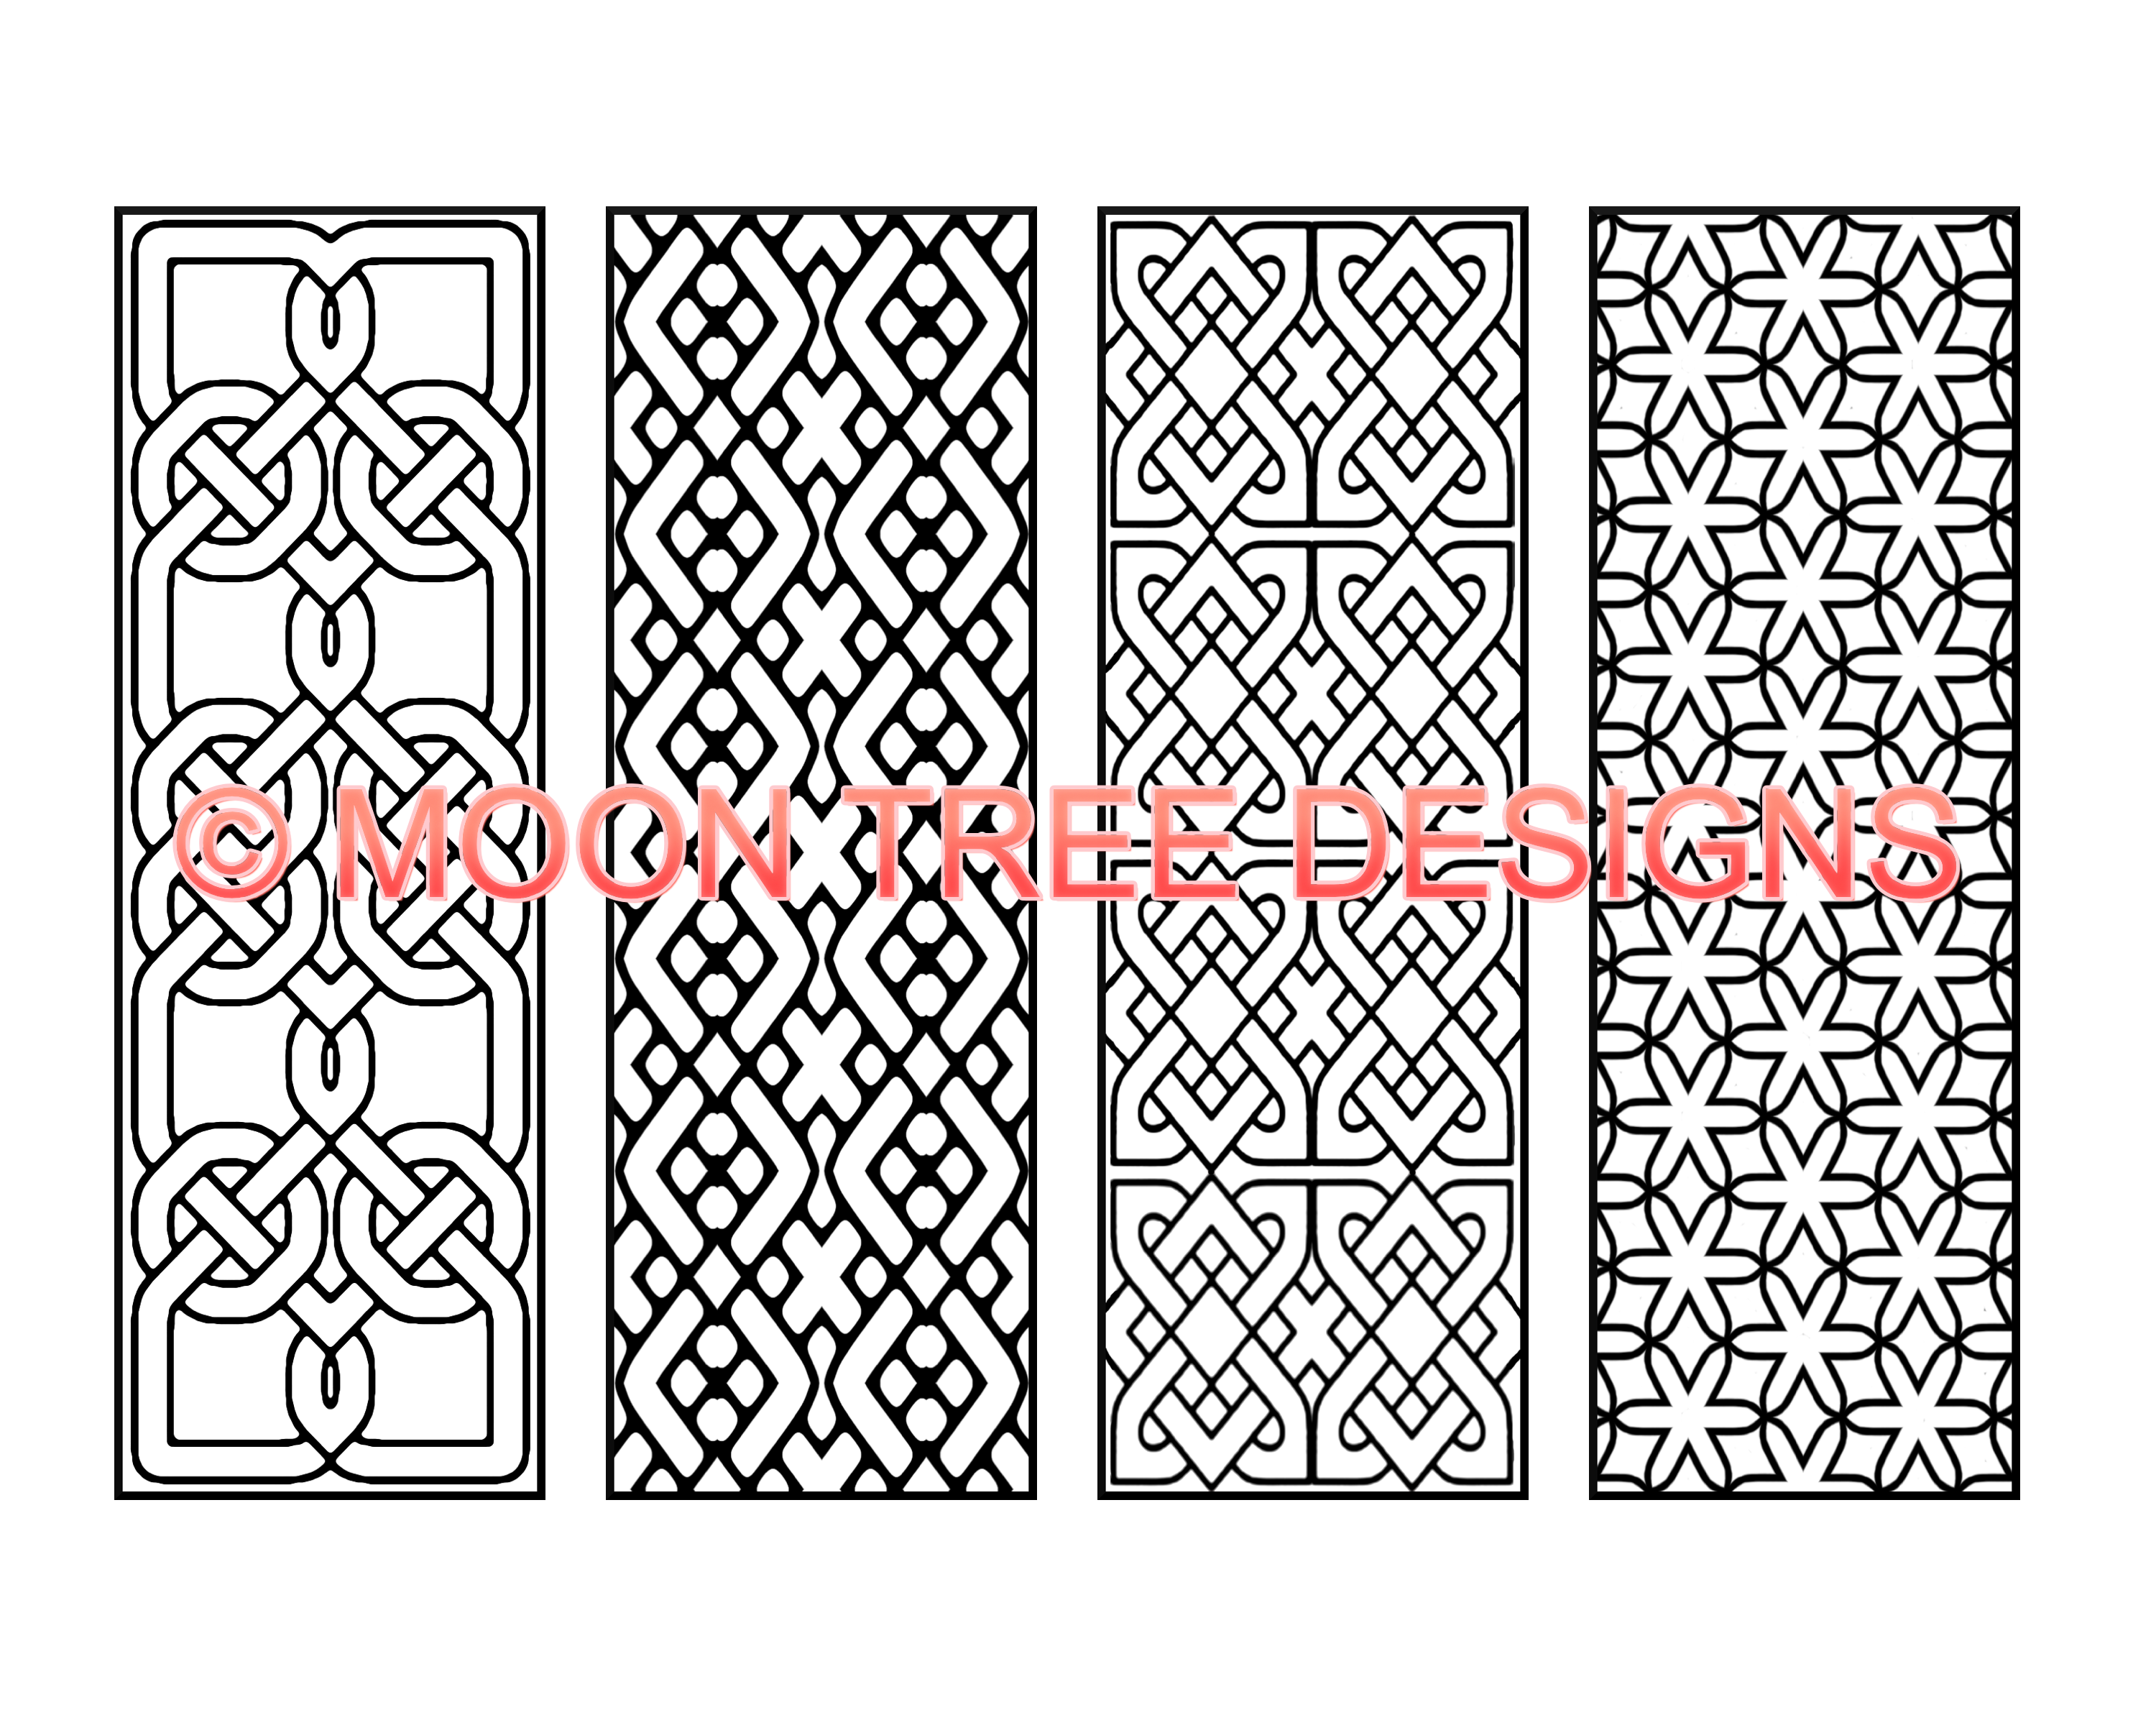 4 black and white bookmarks ready to buy, download and color. for